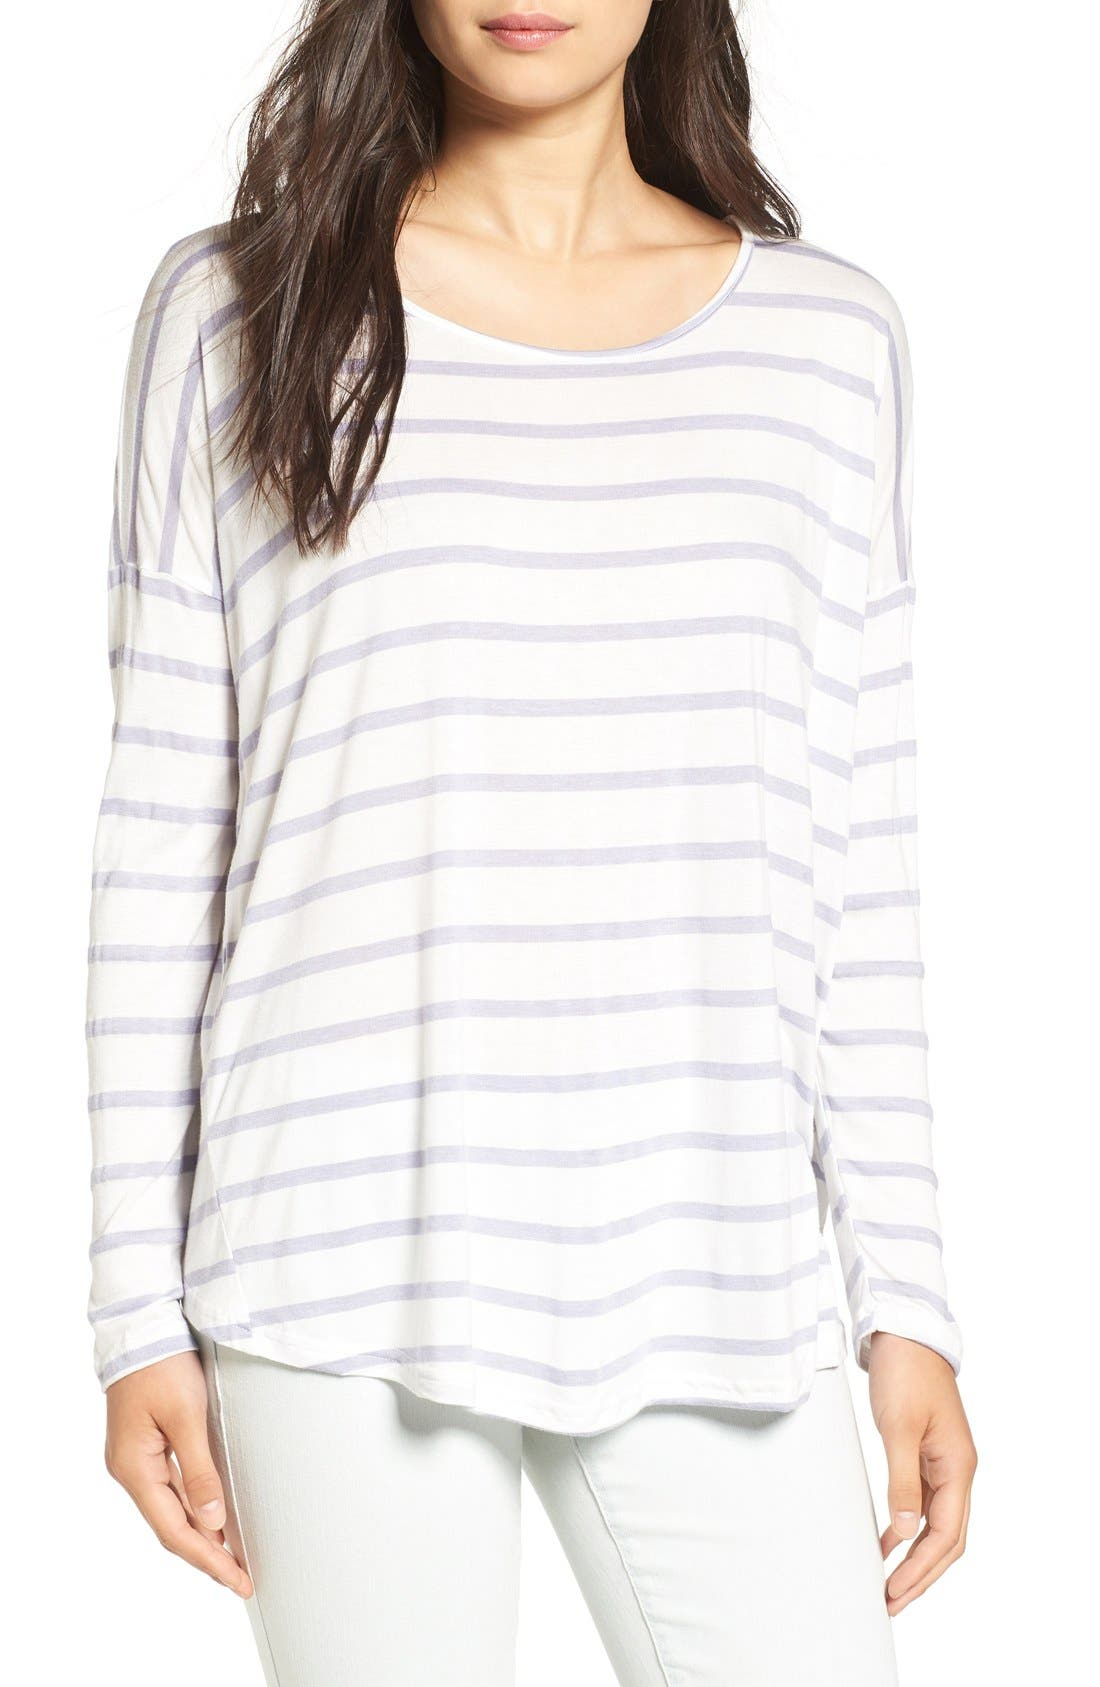 Alternate Image 1 Selected - Billabong 'Change the World' Stripe Long Sleeve Tee